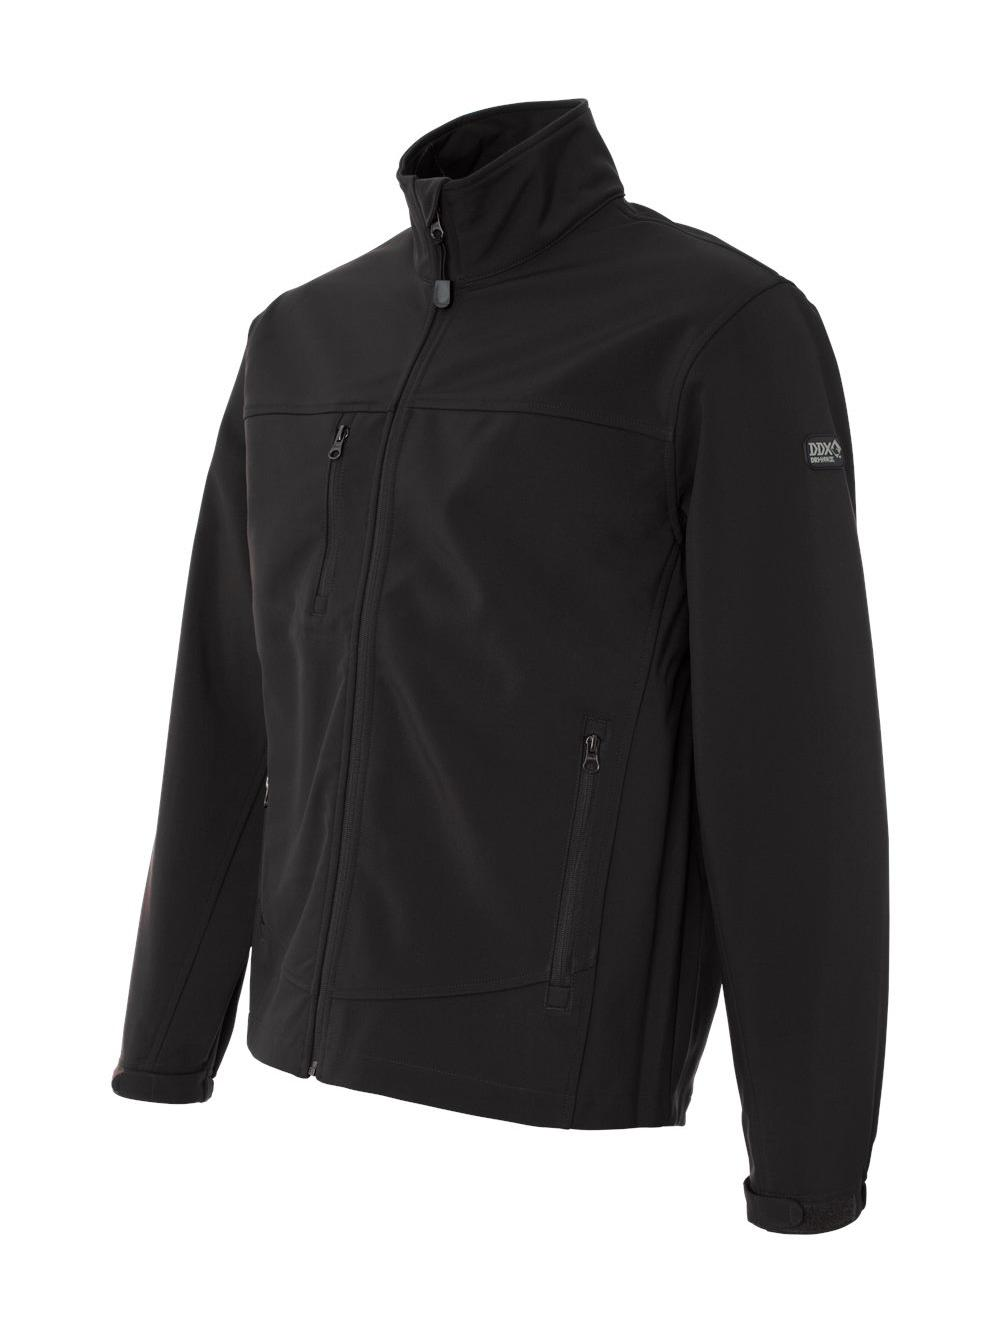 DRI DUCK - Motion Soft Shell Jacket Tall Sizes - 5350T